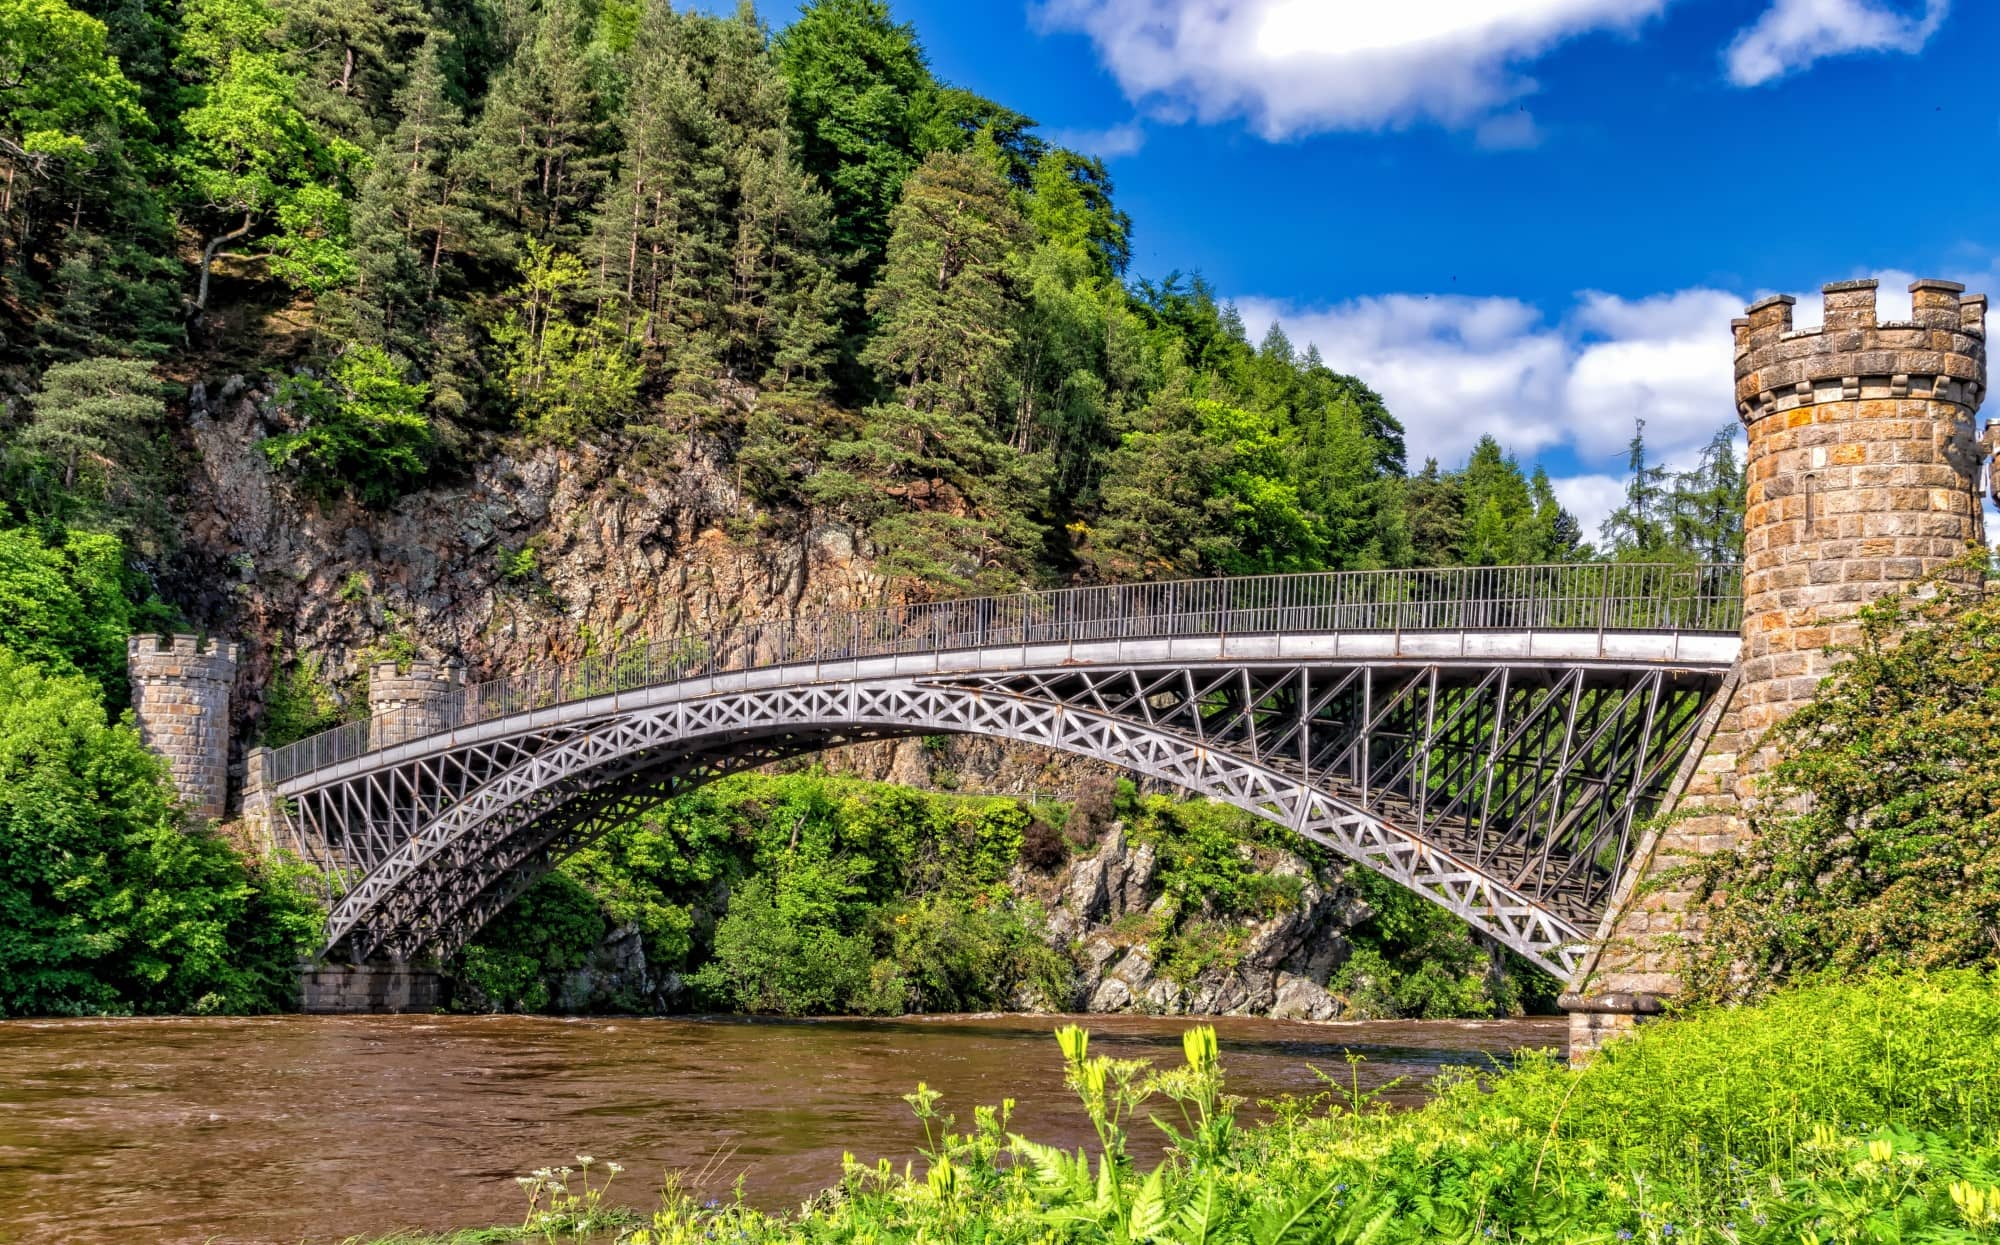 A bridge in Speyside, a Scotland's region